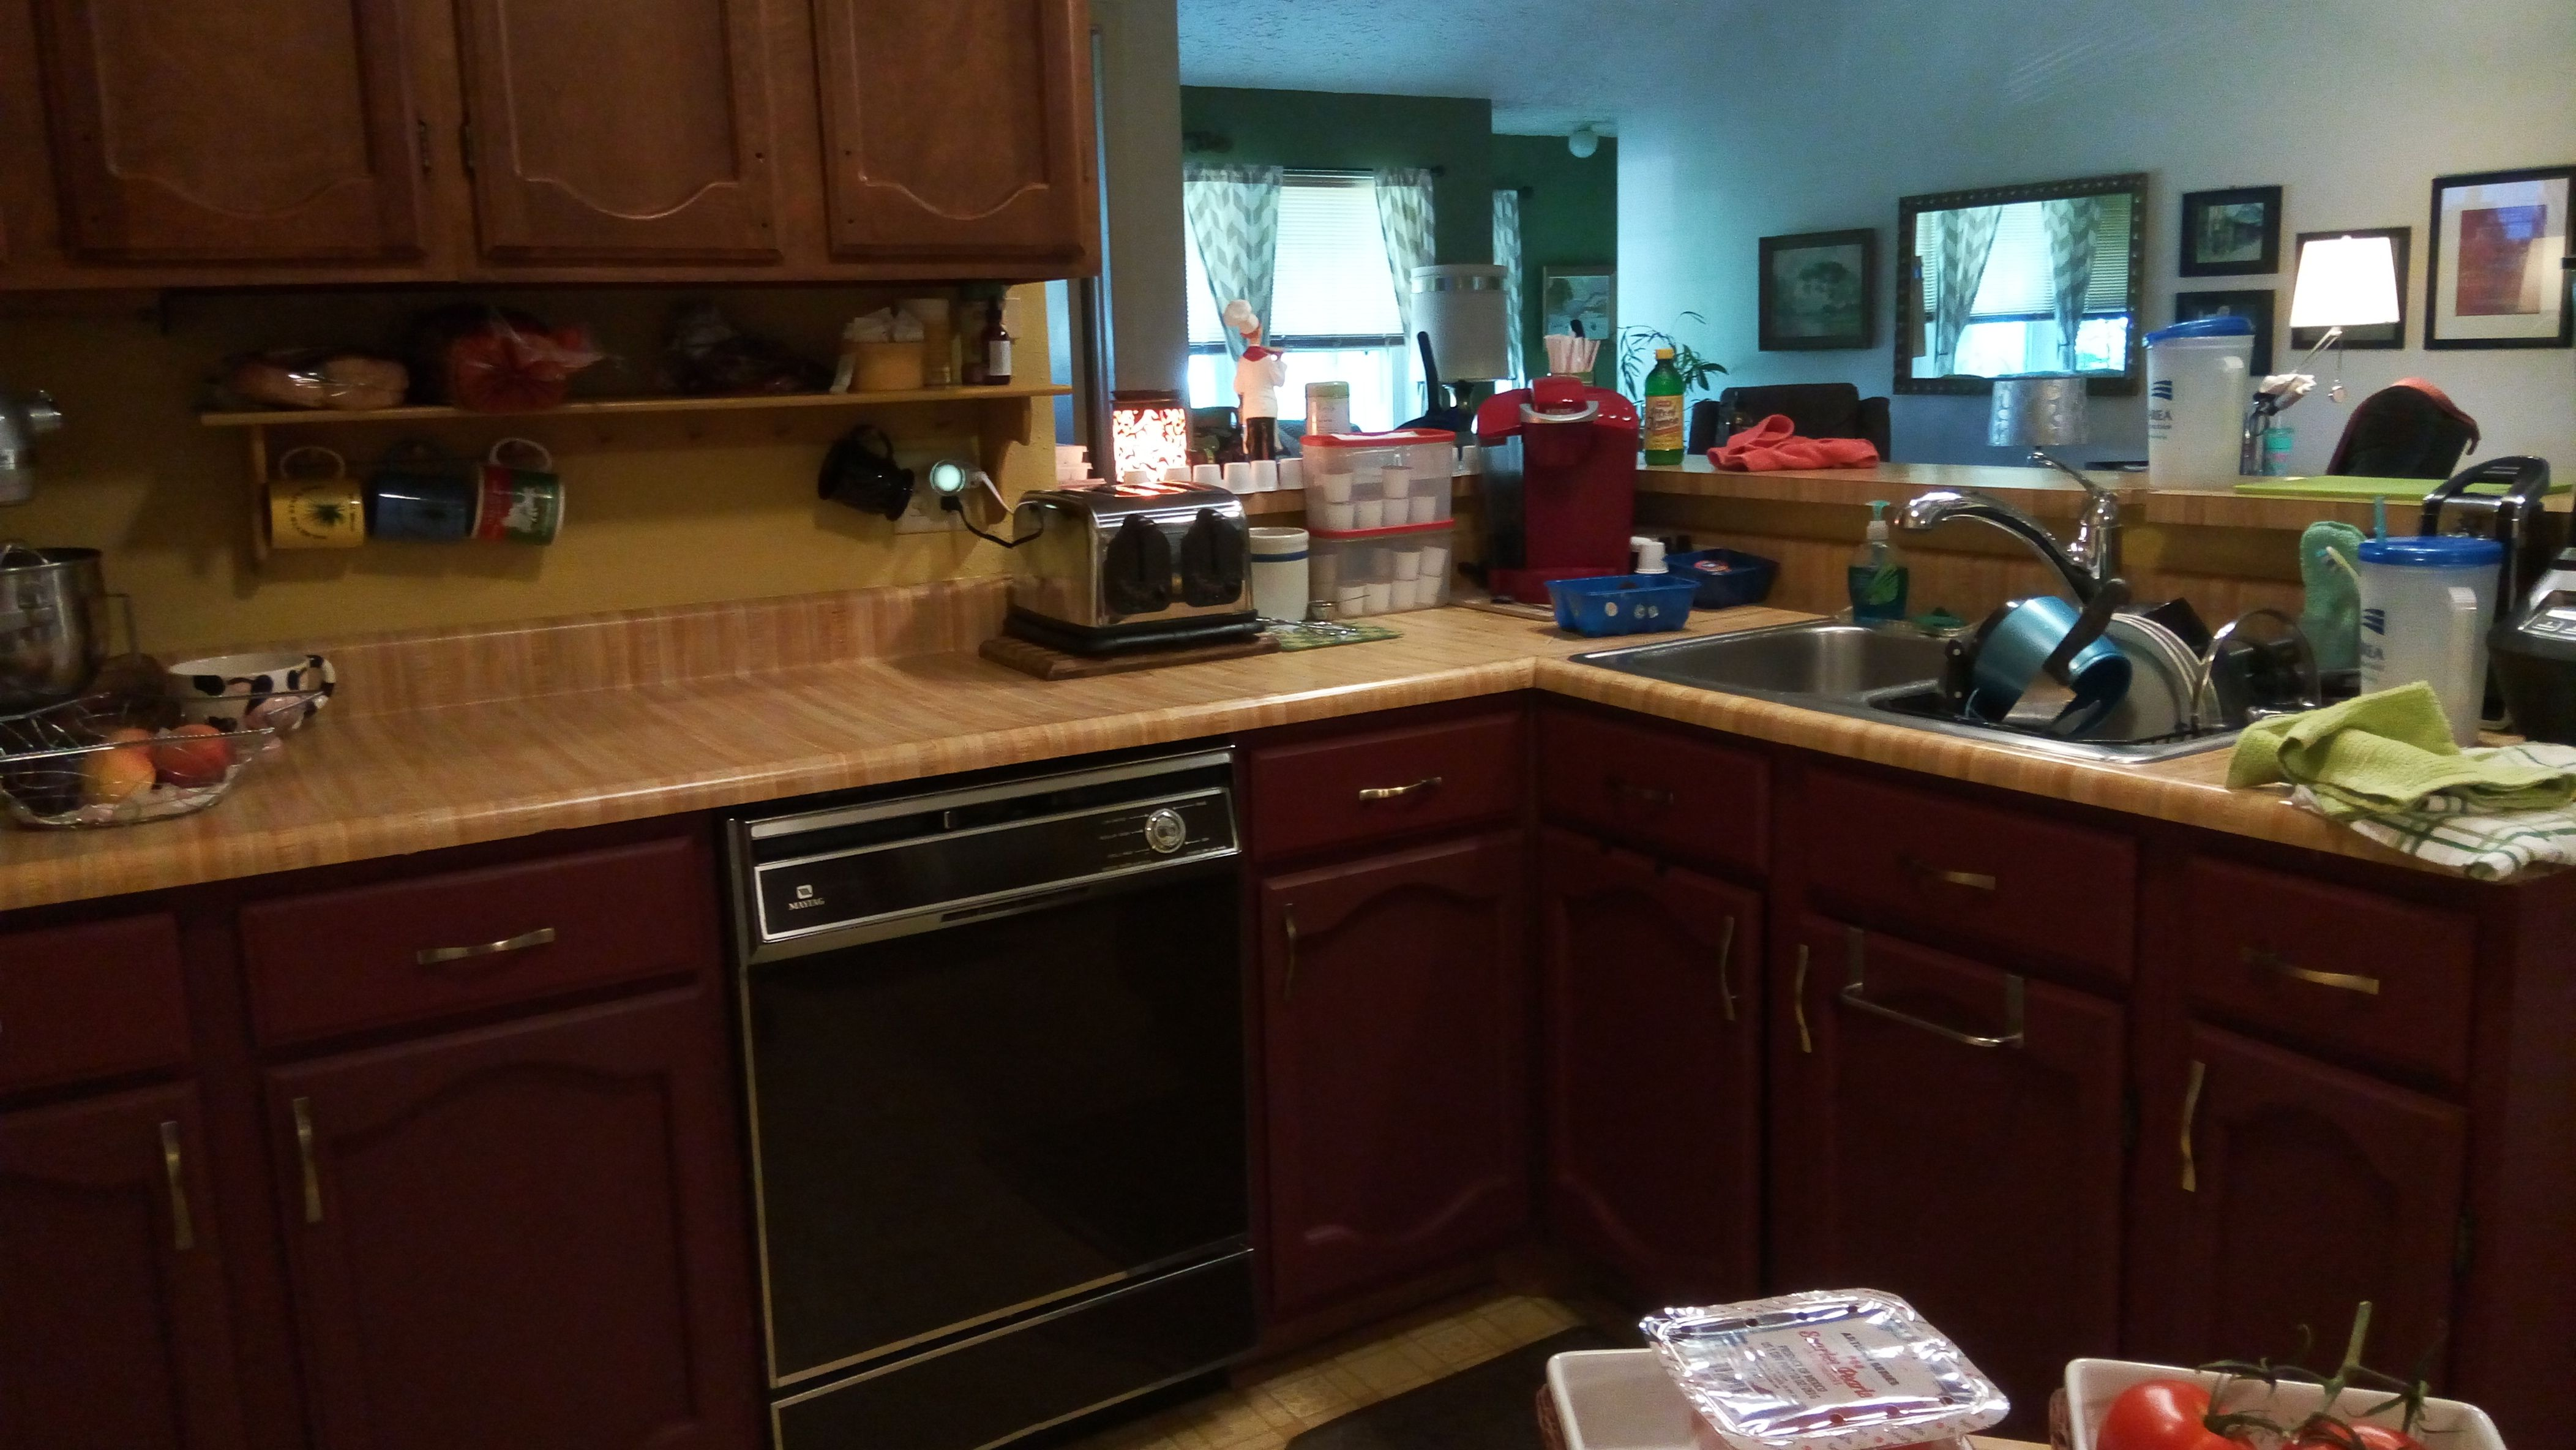 Waverly Chalk Painted Cabinets In The Color Crimson Black Chalk Paint Kitchen Cabinets Chalk Paint Cabinets Painting Kitchen Cabinets